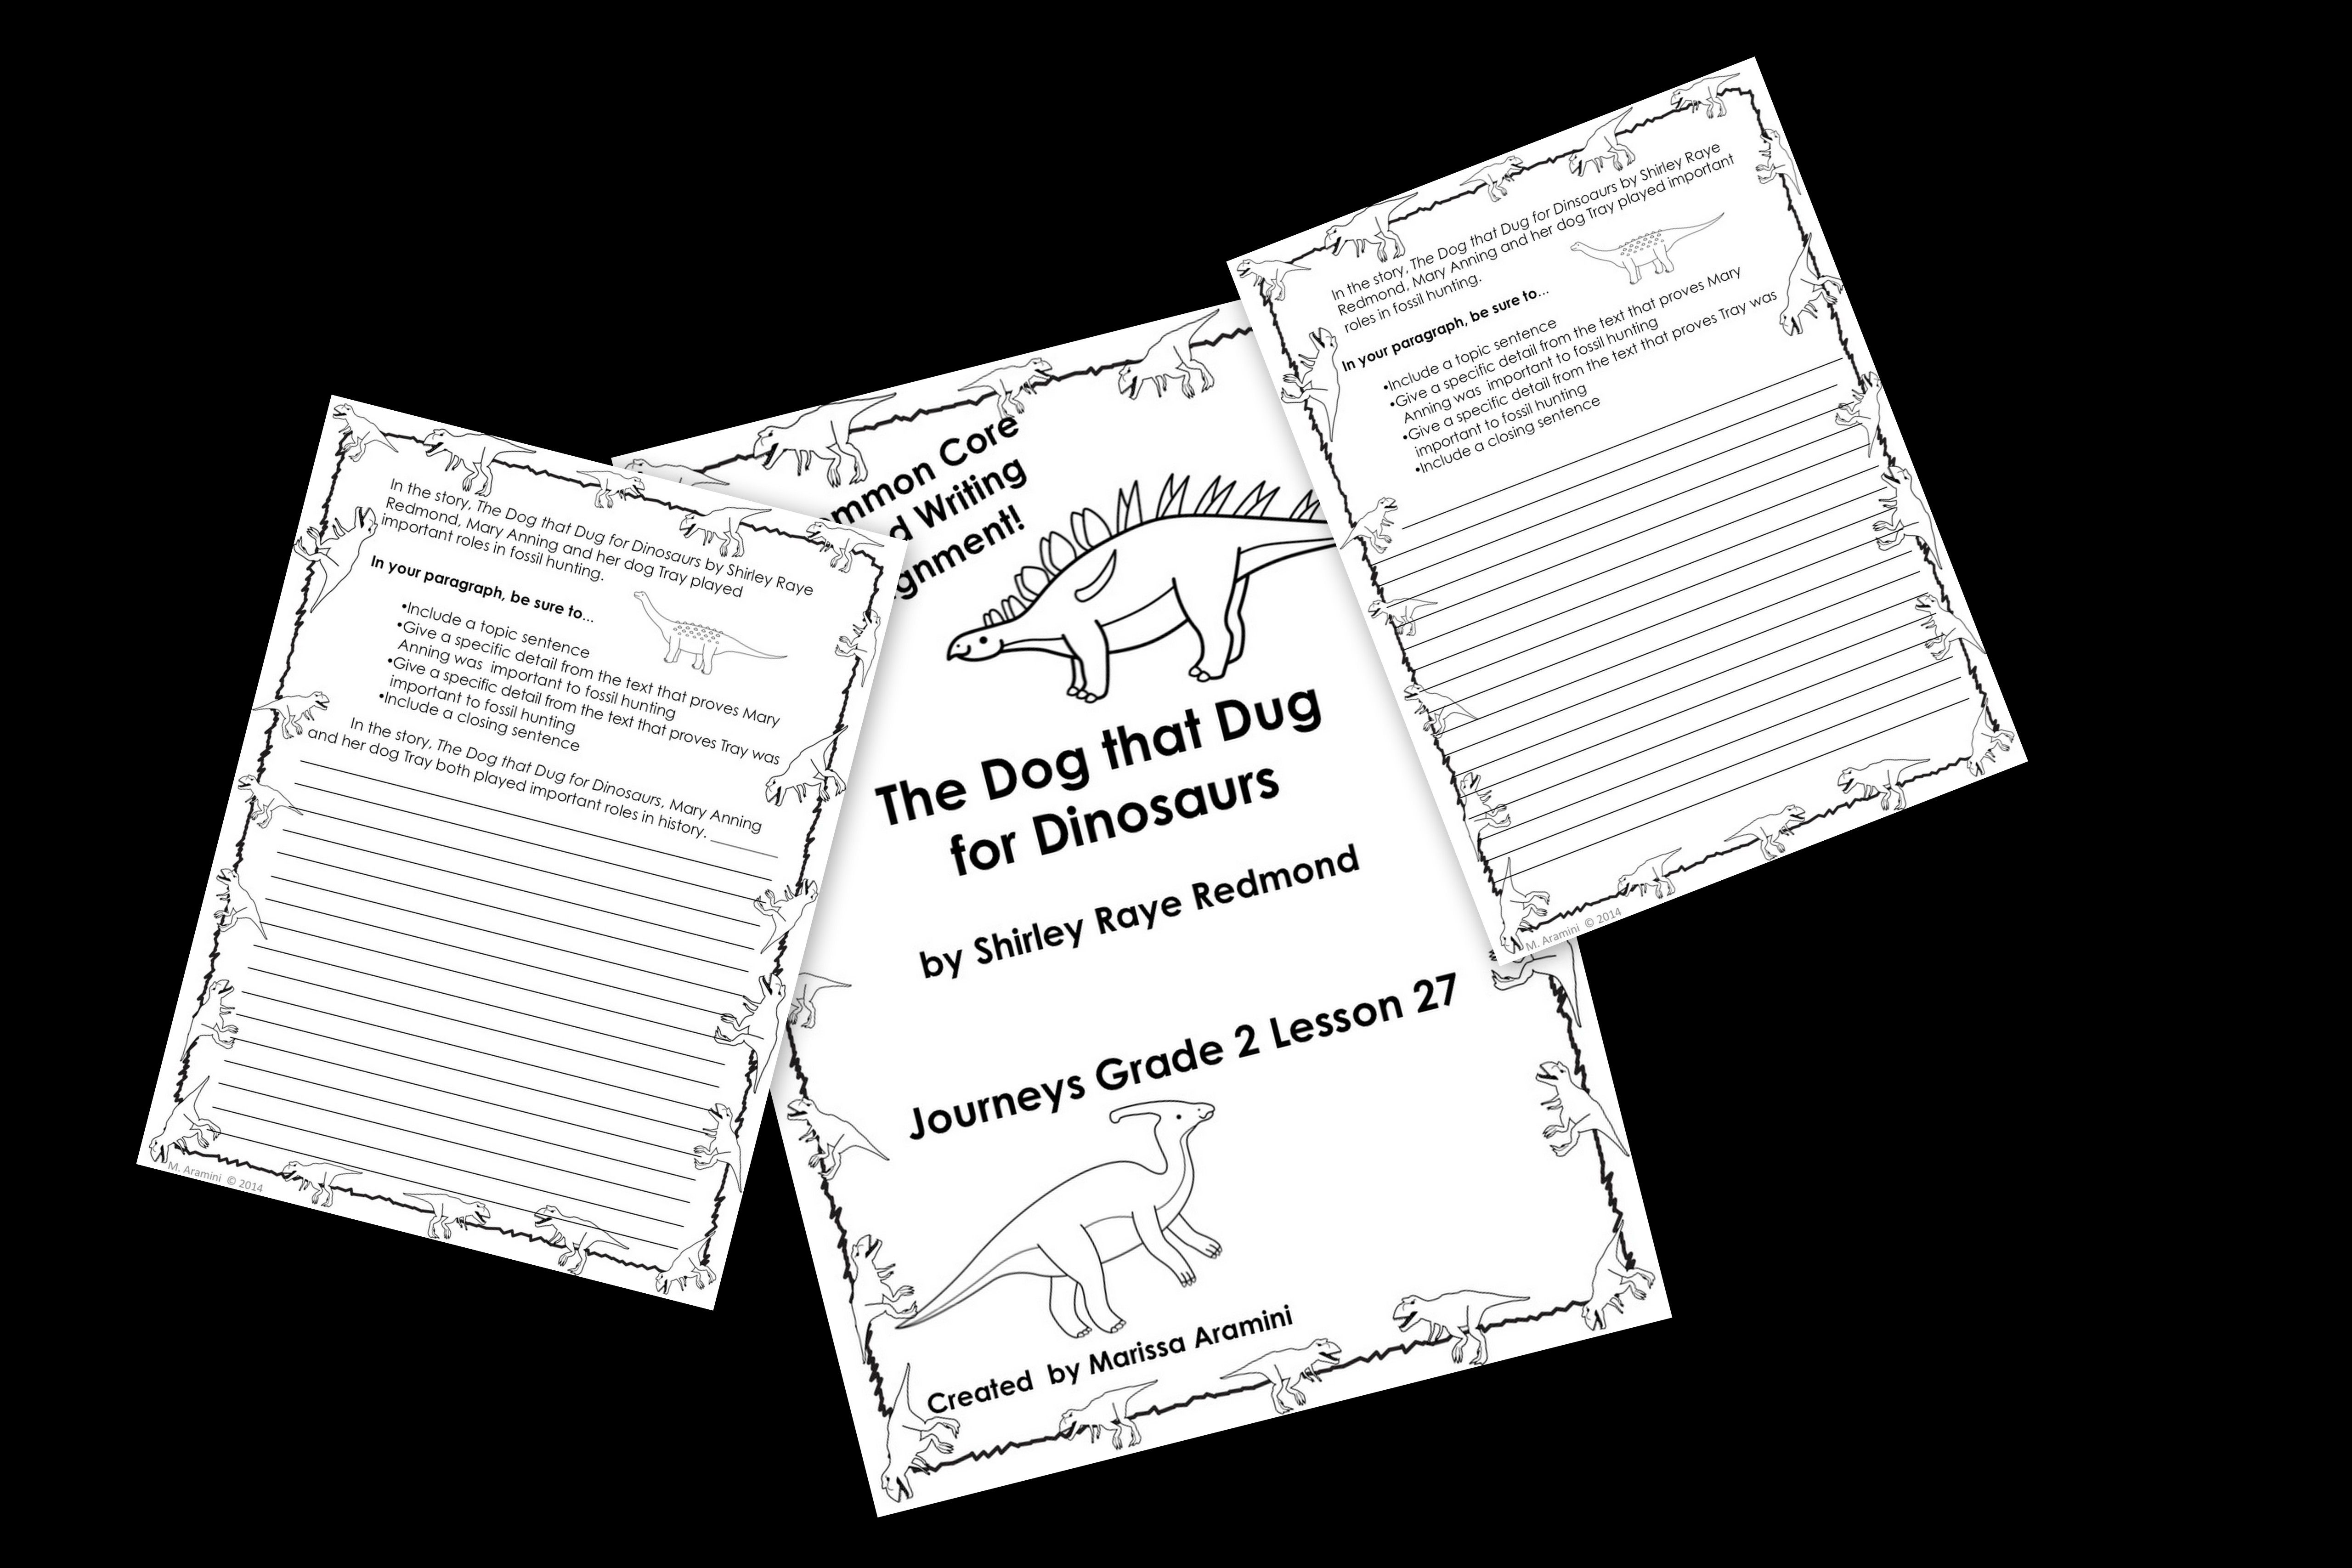 The Dog That Dug For Dinosaurs Journeys Grade 2 Lesson 27